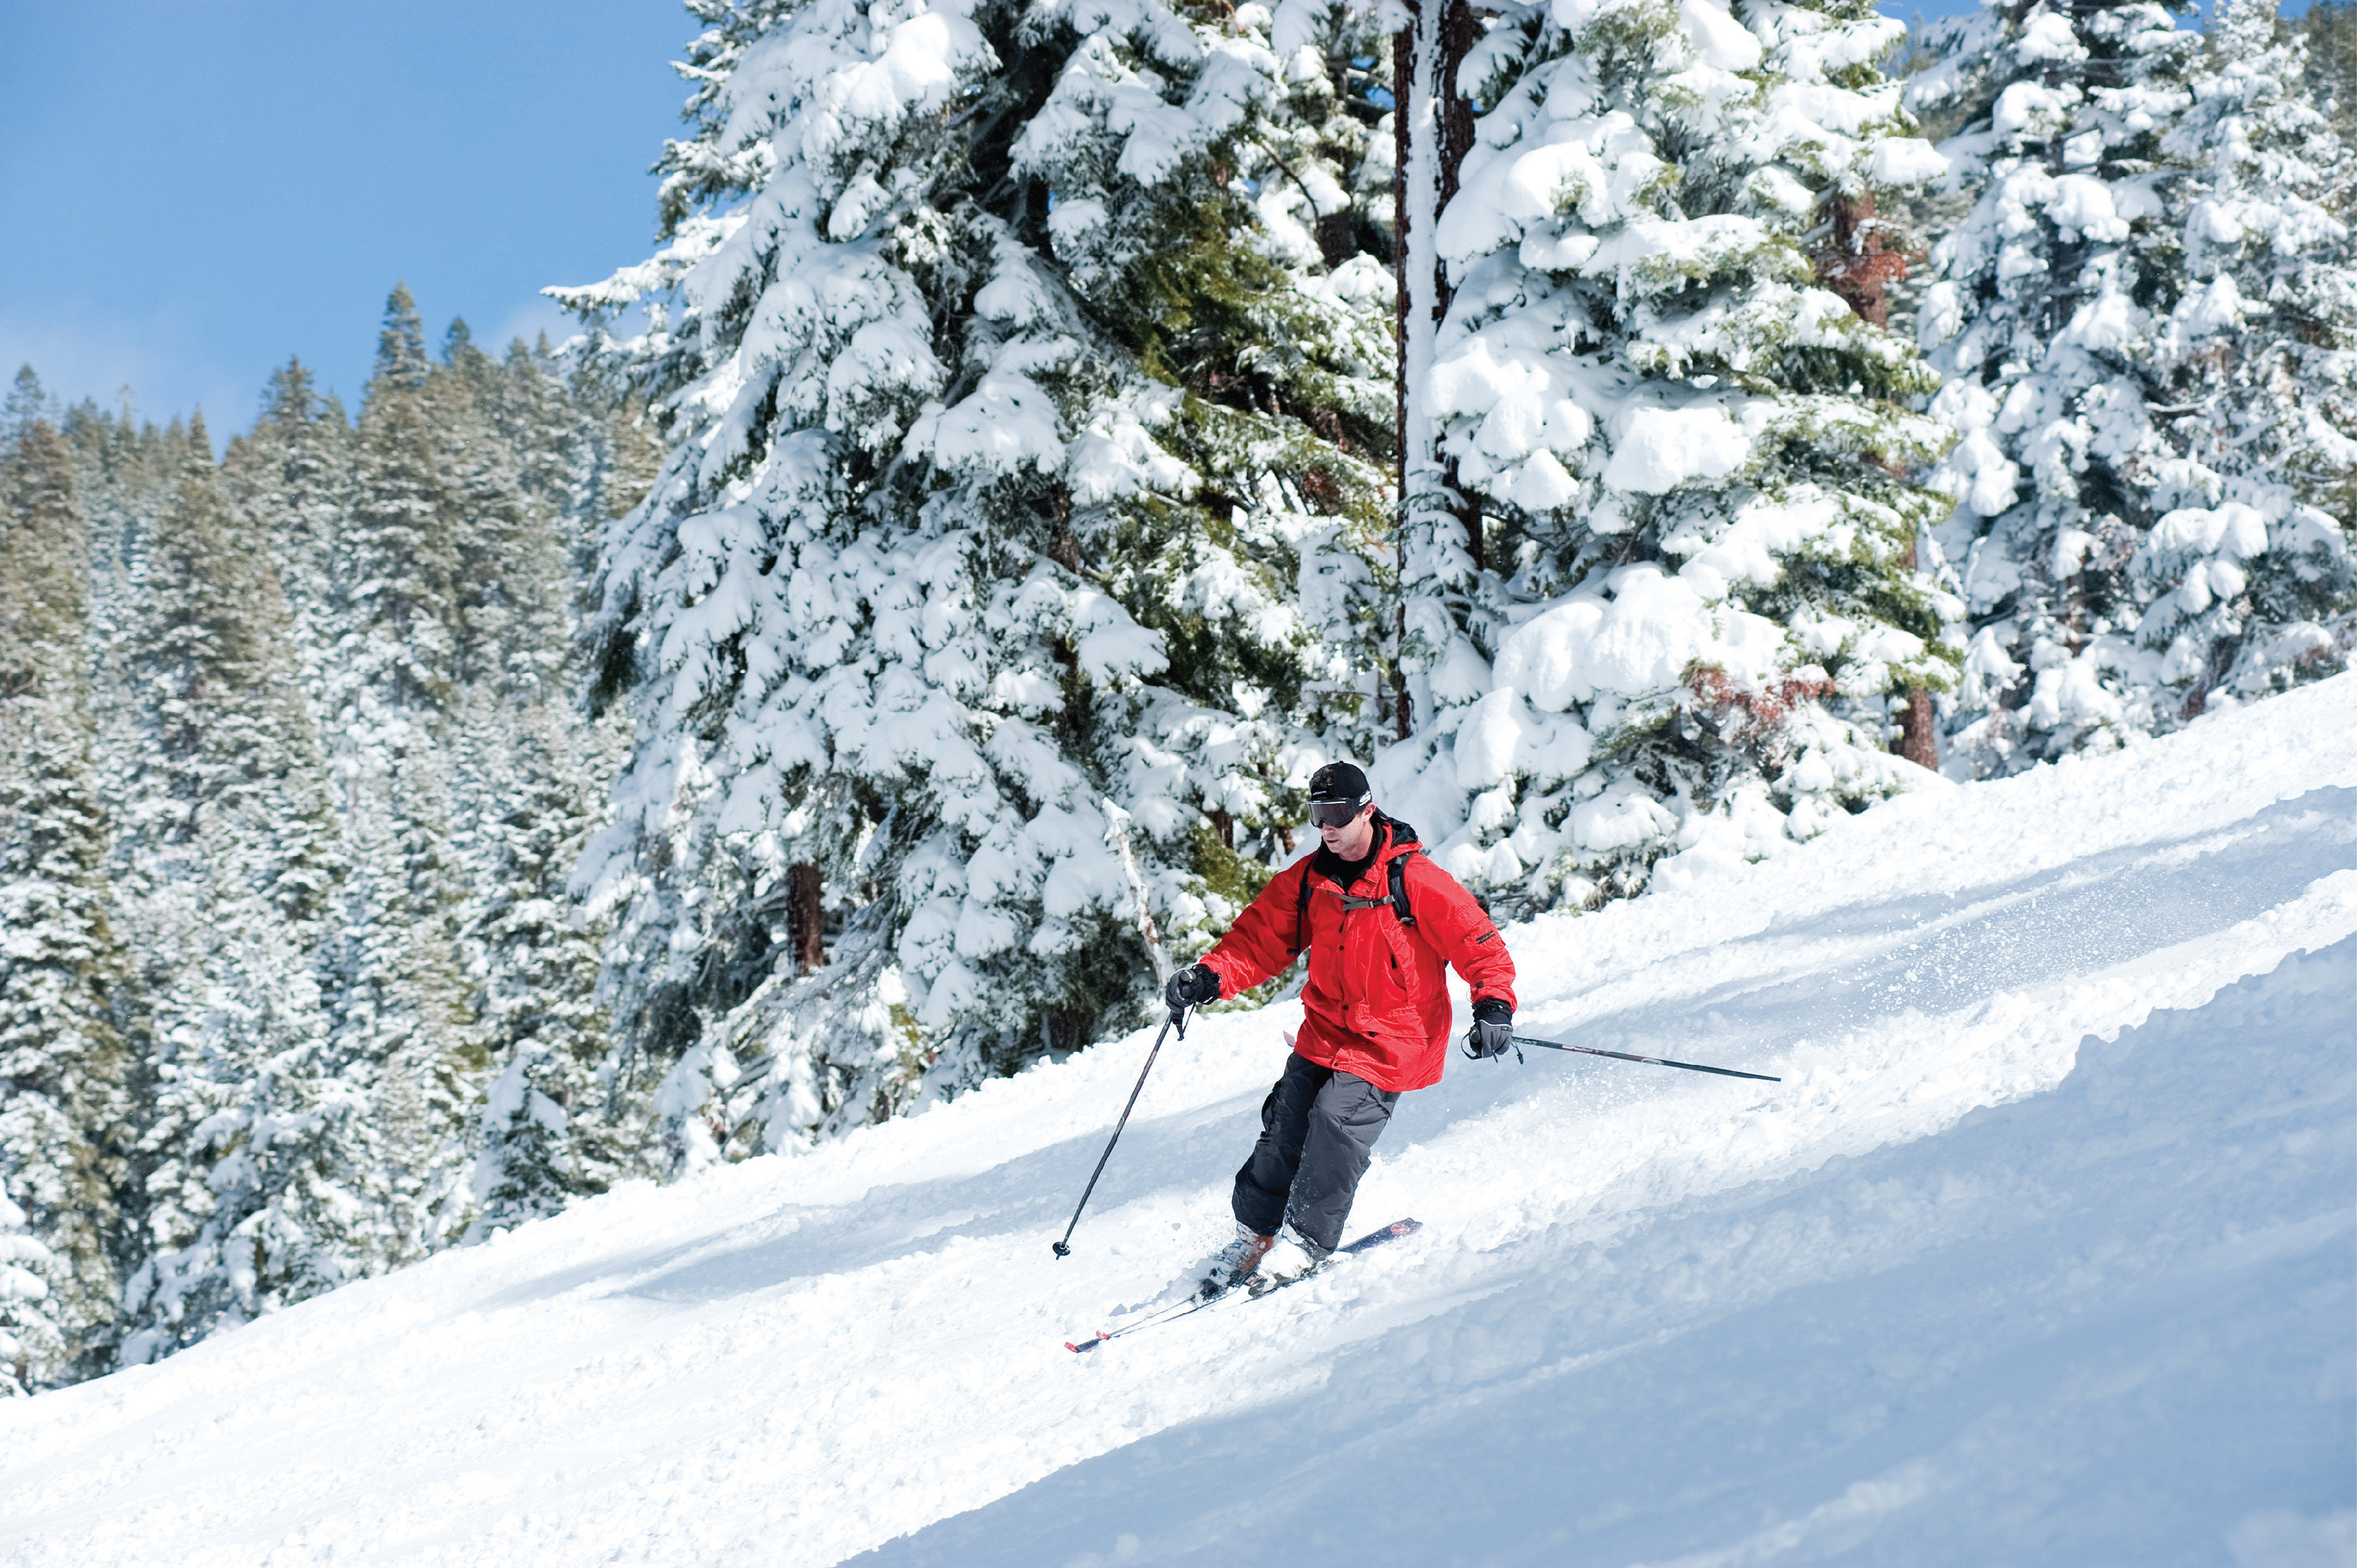 Adventure Outdoor Activities Outdoors Ski Sport snow tree skiing footwear Nature telemark skiing geological phenomenon slope Winter hill sports ski mountaineering piste ski equipment ski touring outdoor recreation ski slope winter sport nordic skiing jacket extreme sport recreation mountain range downhill ridge snowshoe sports equipment wooded day